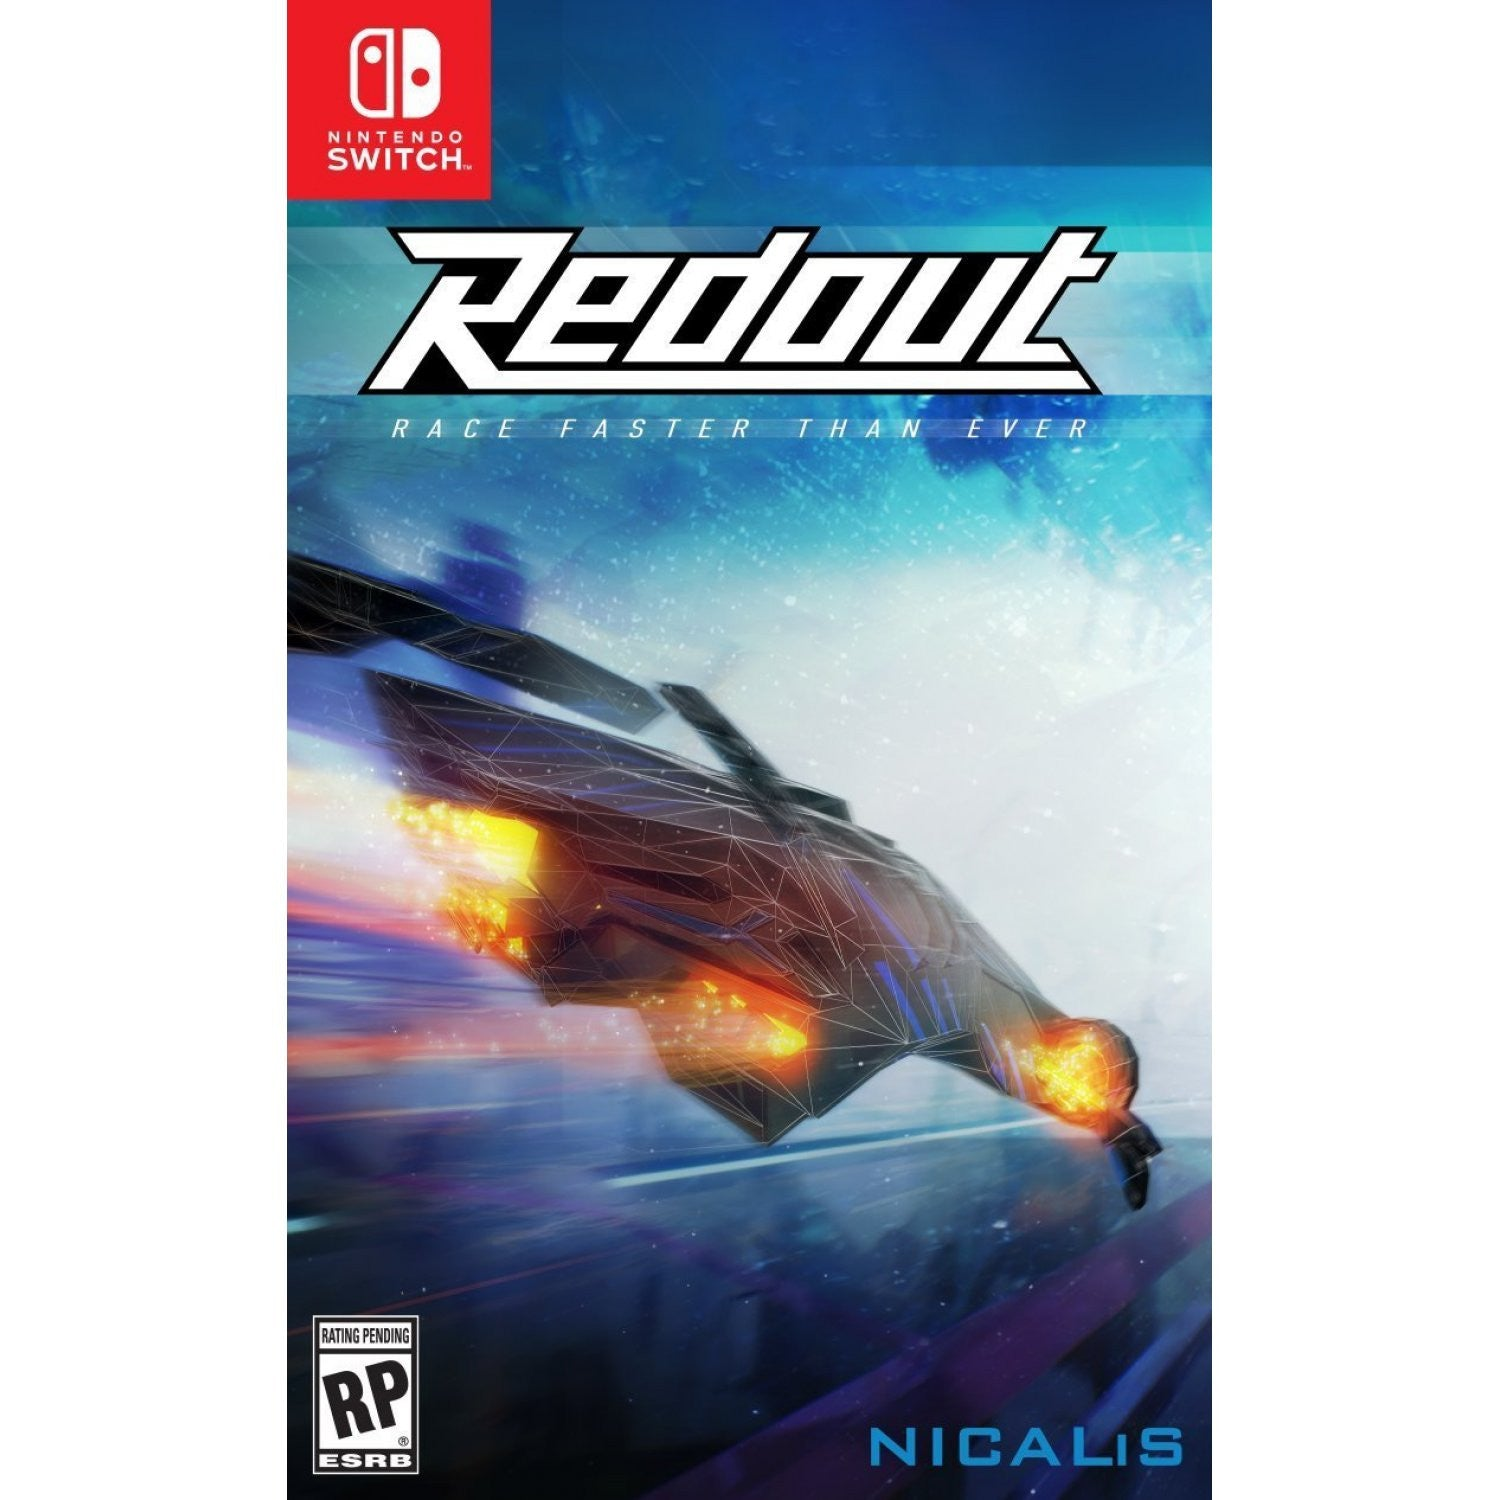 Nintendo Switch Redout